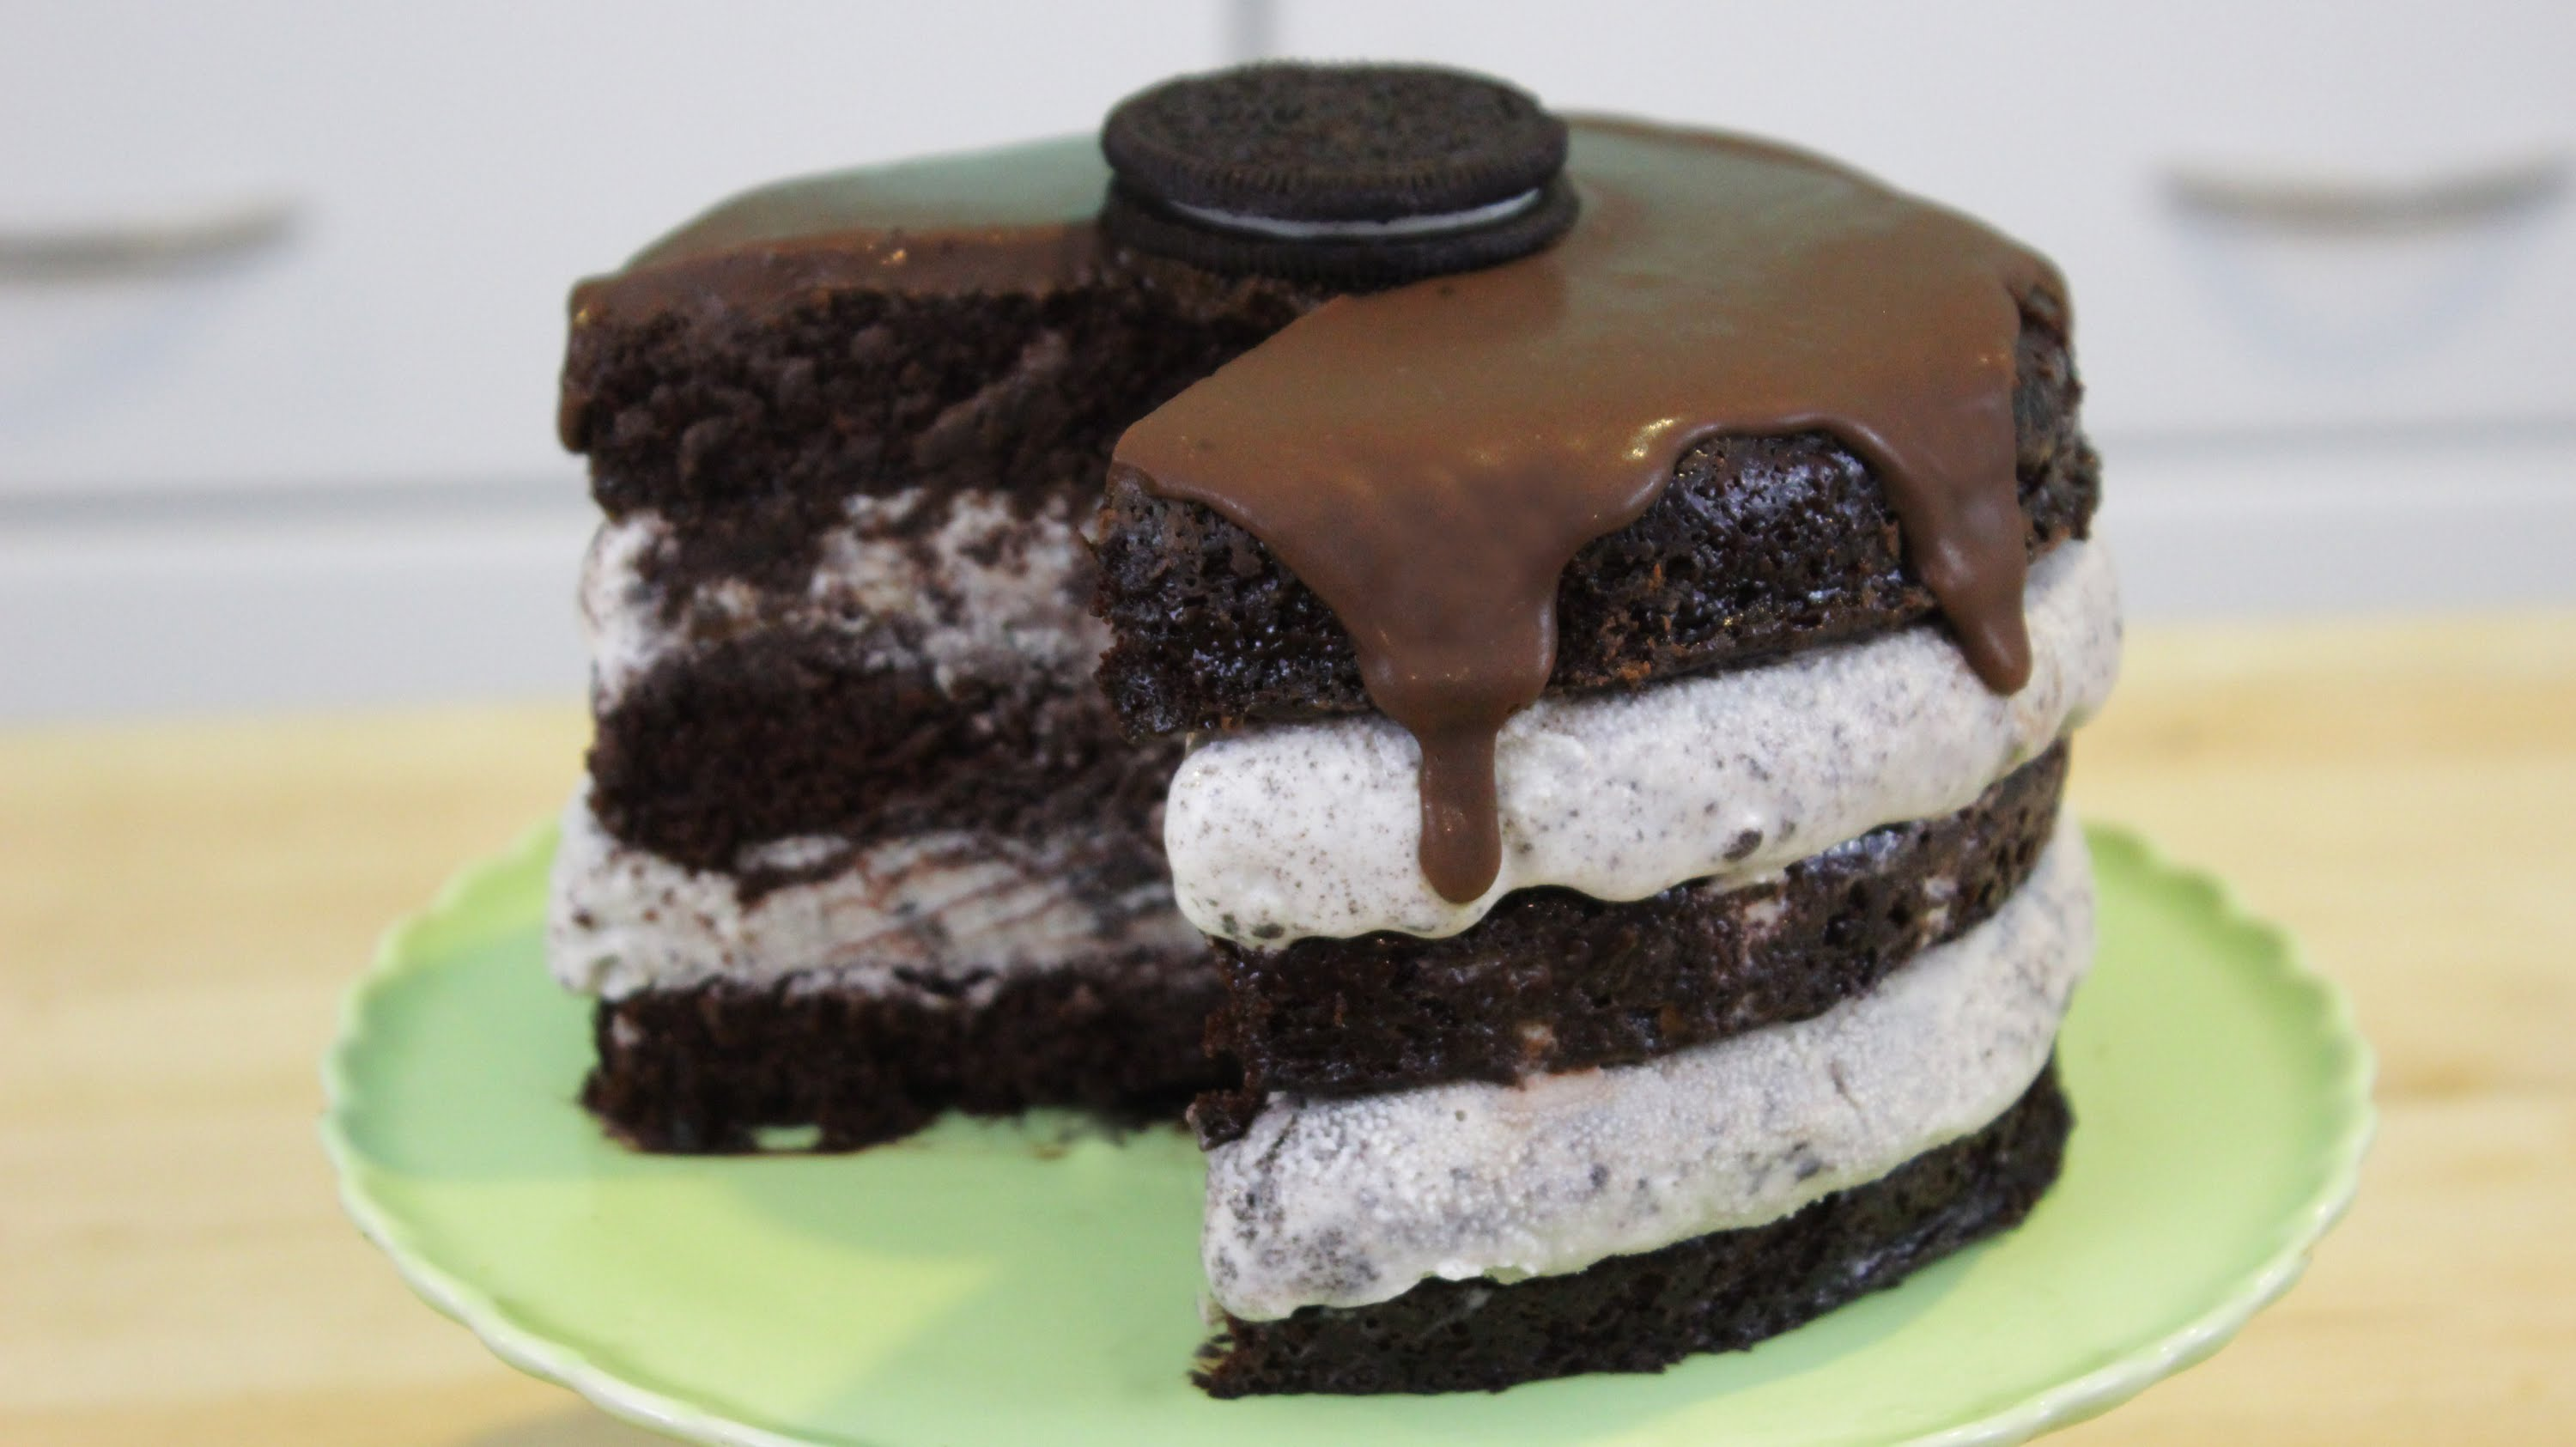 Oreo Ice-Cream Cake That Is Super Simple To Make